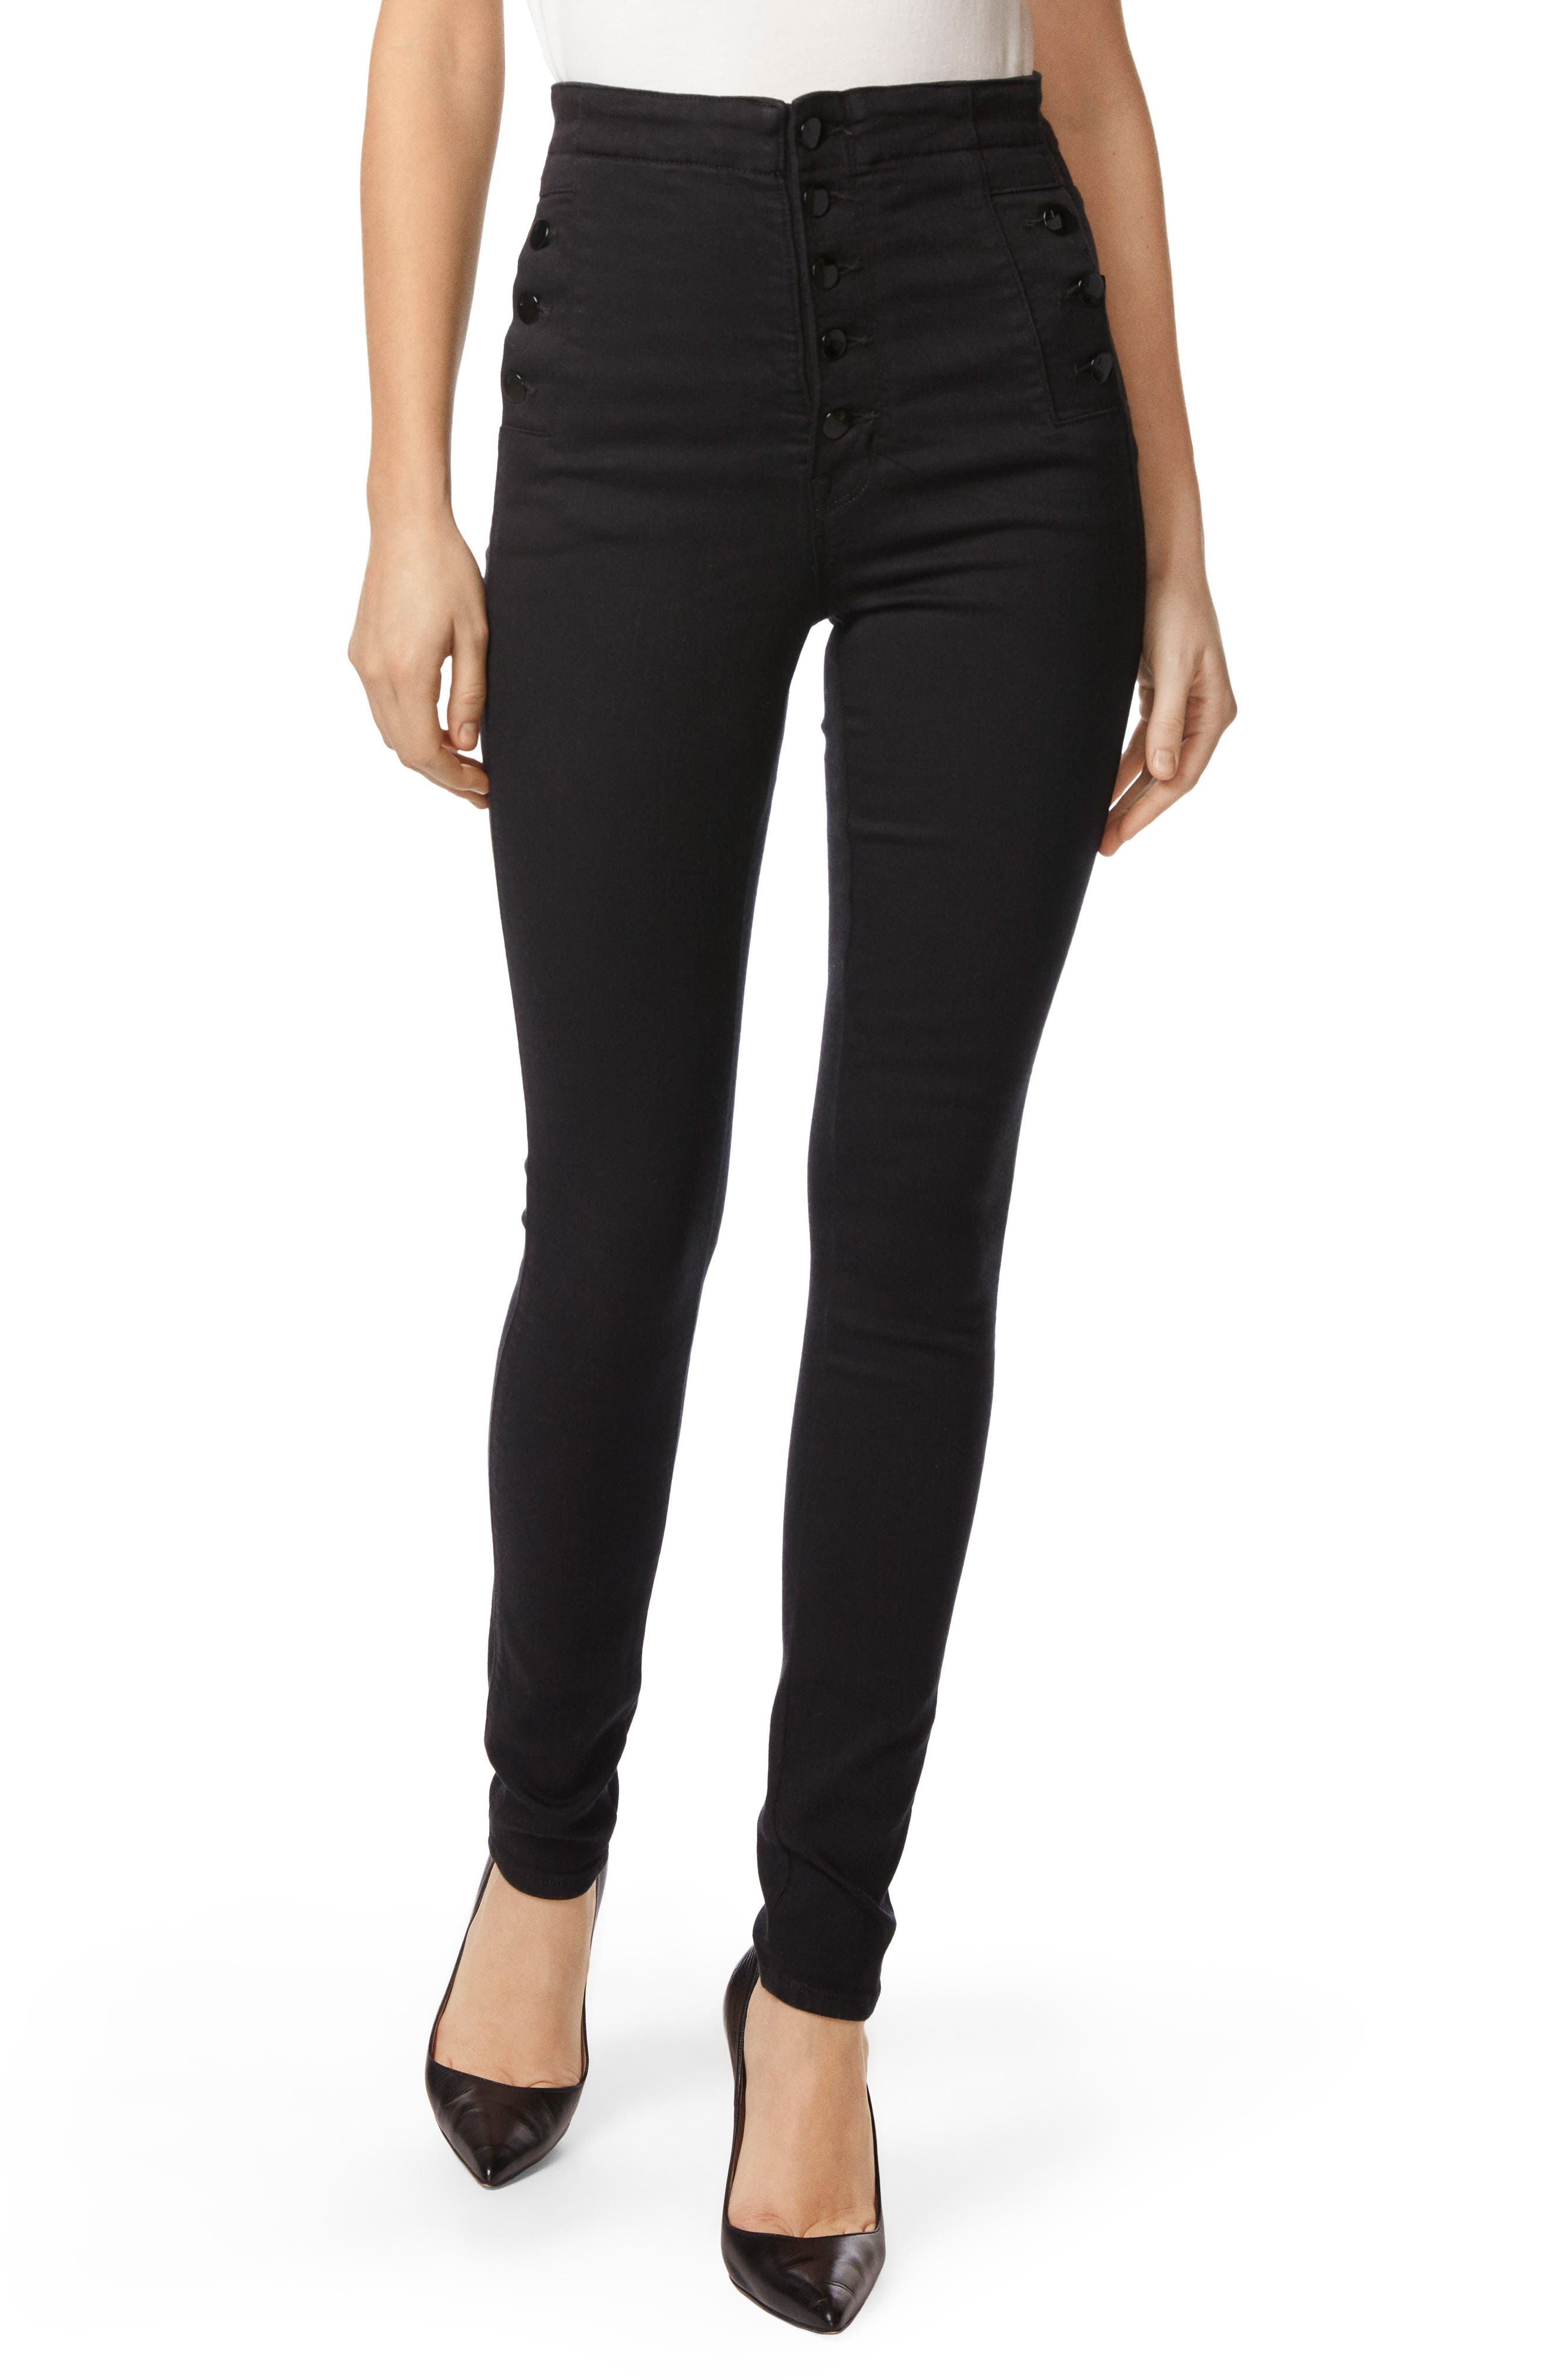 Natasha Sky High High Waist Super Skinny Jeans,                         Main,                         color, Seriously Black